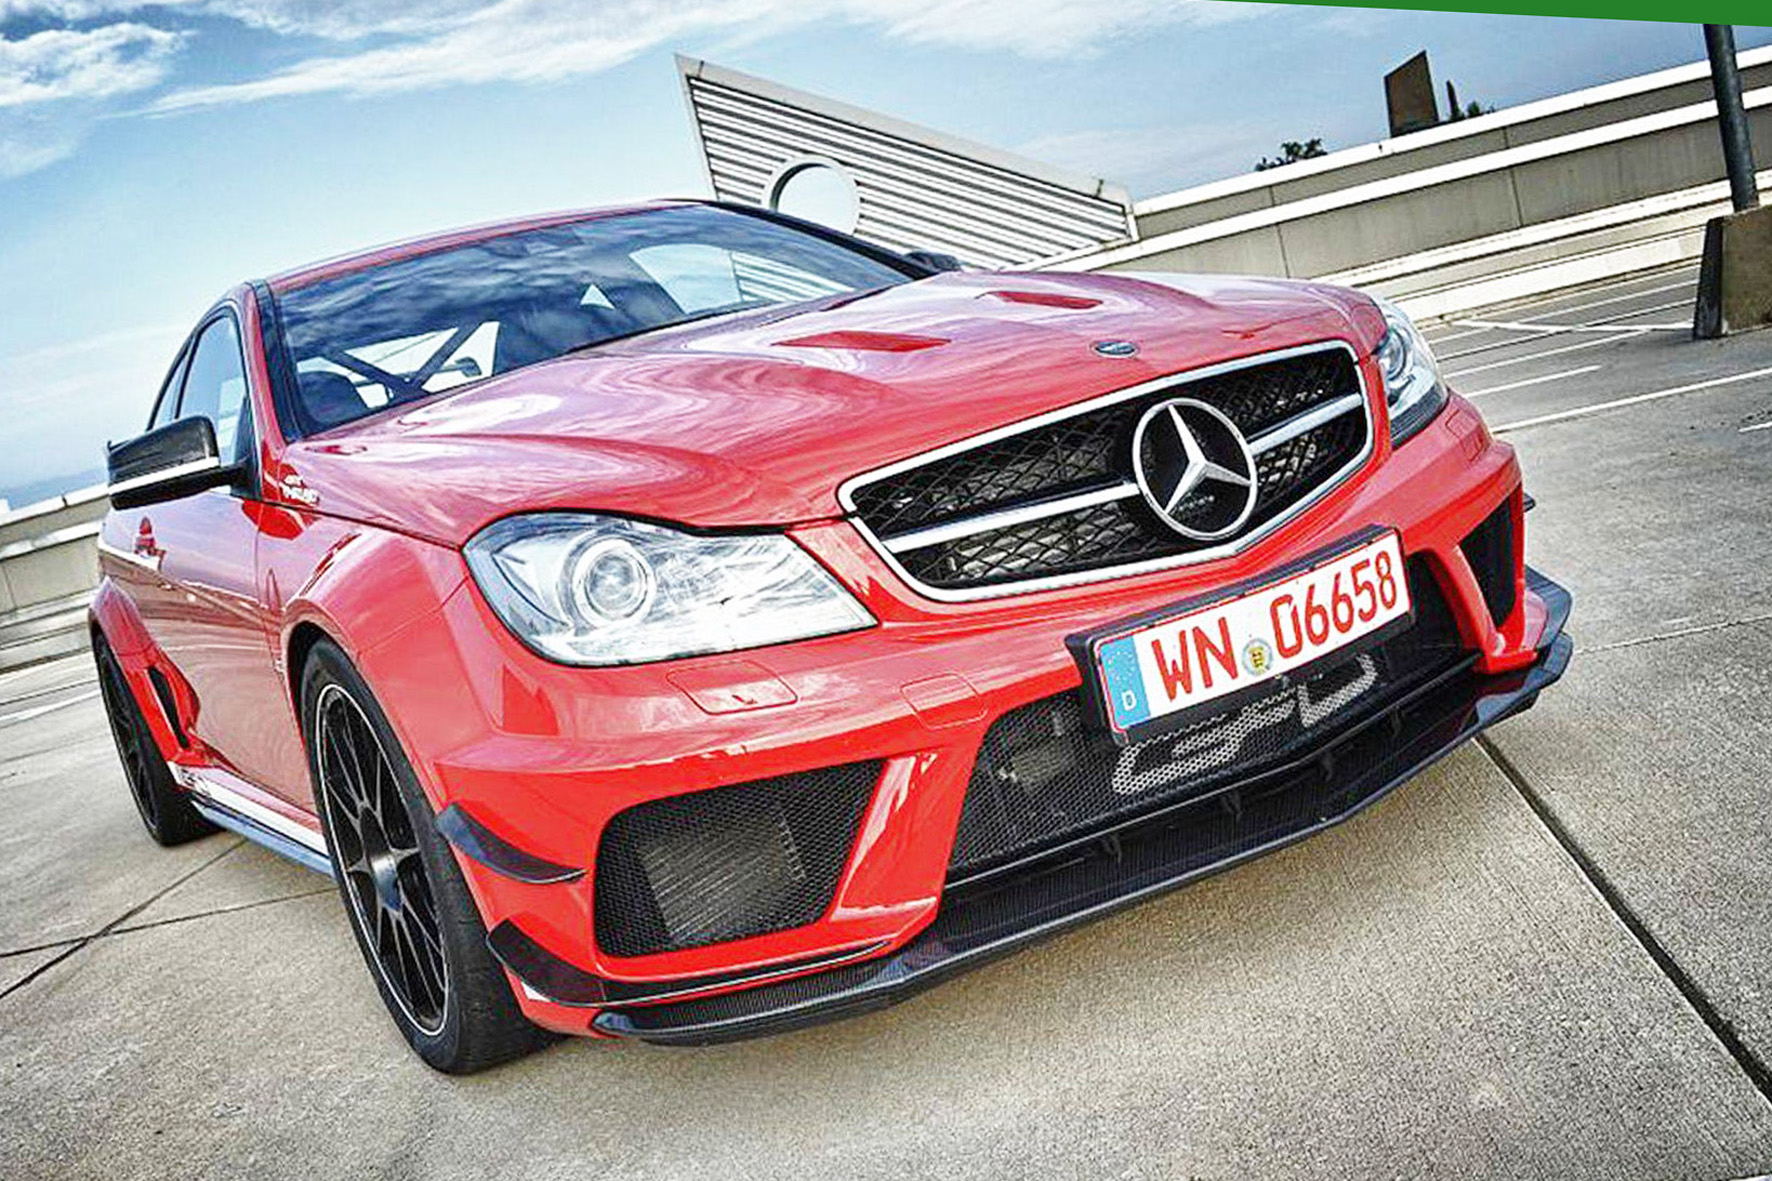 GAD Mercedes-Benz C63 AMG Black Series